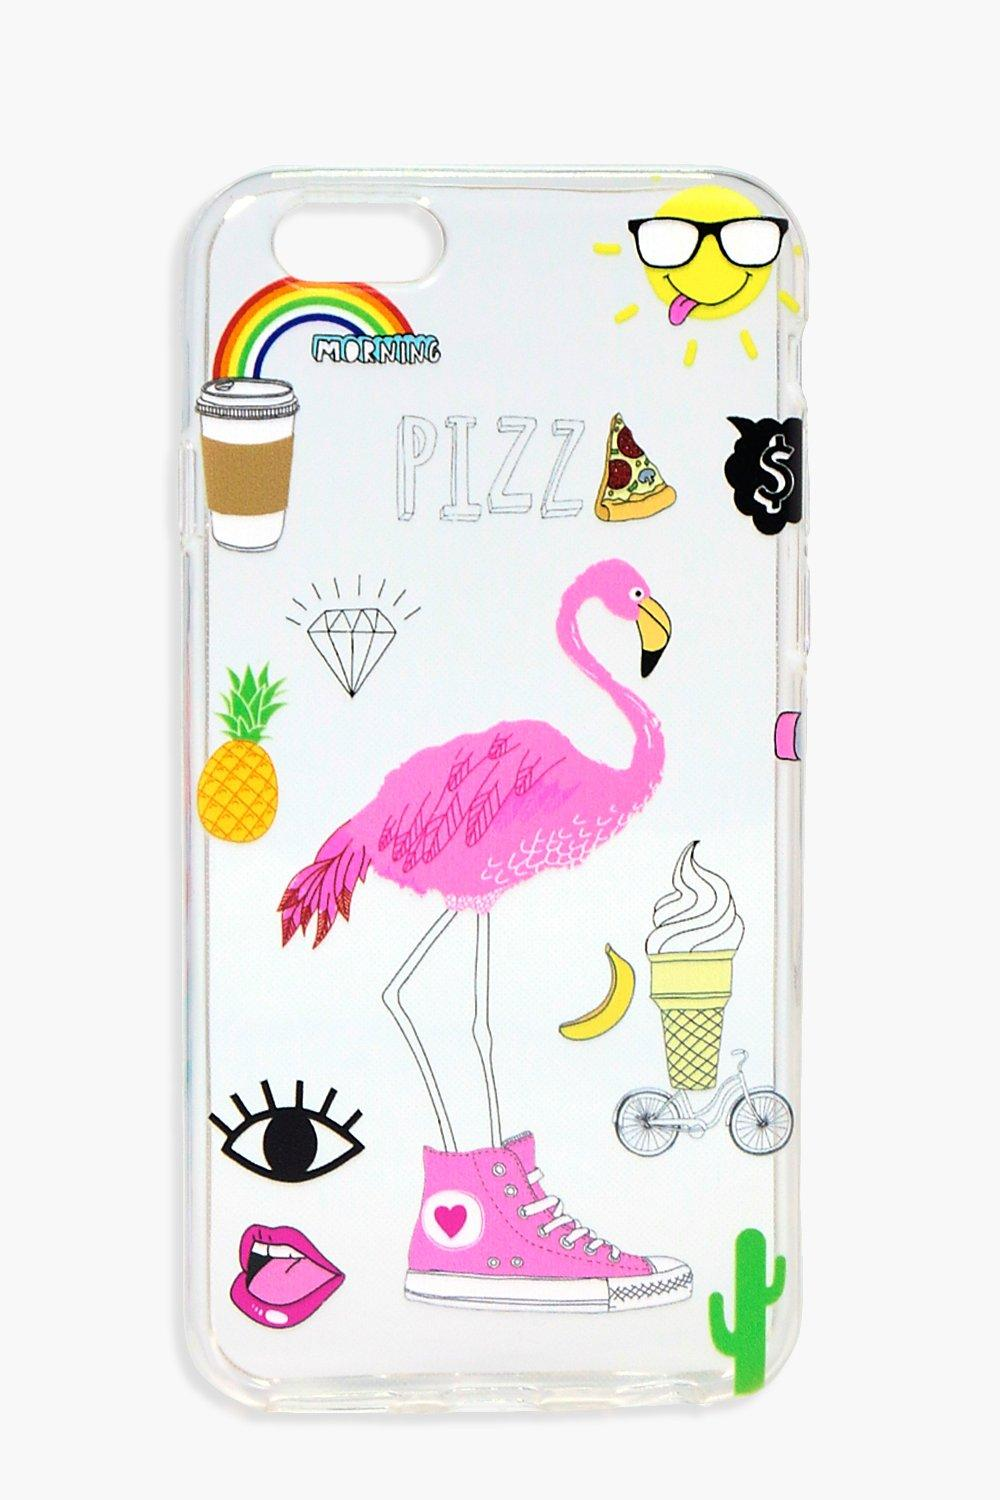 & Icons iPhone 6 Case - multi - Flamingo & Icons i